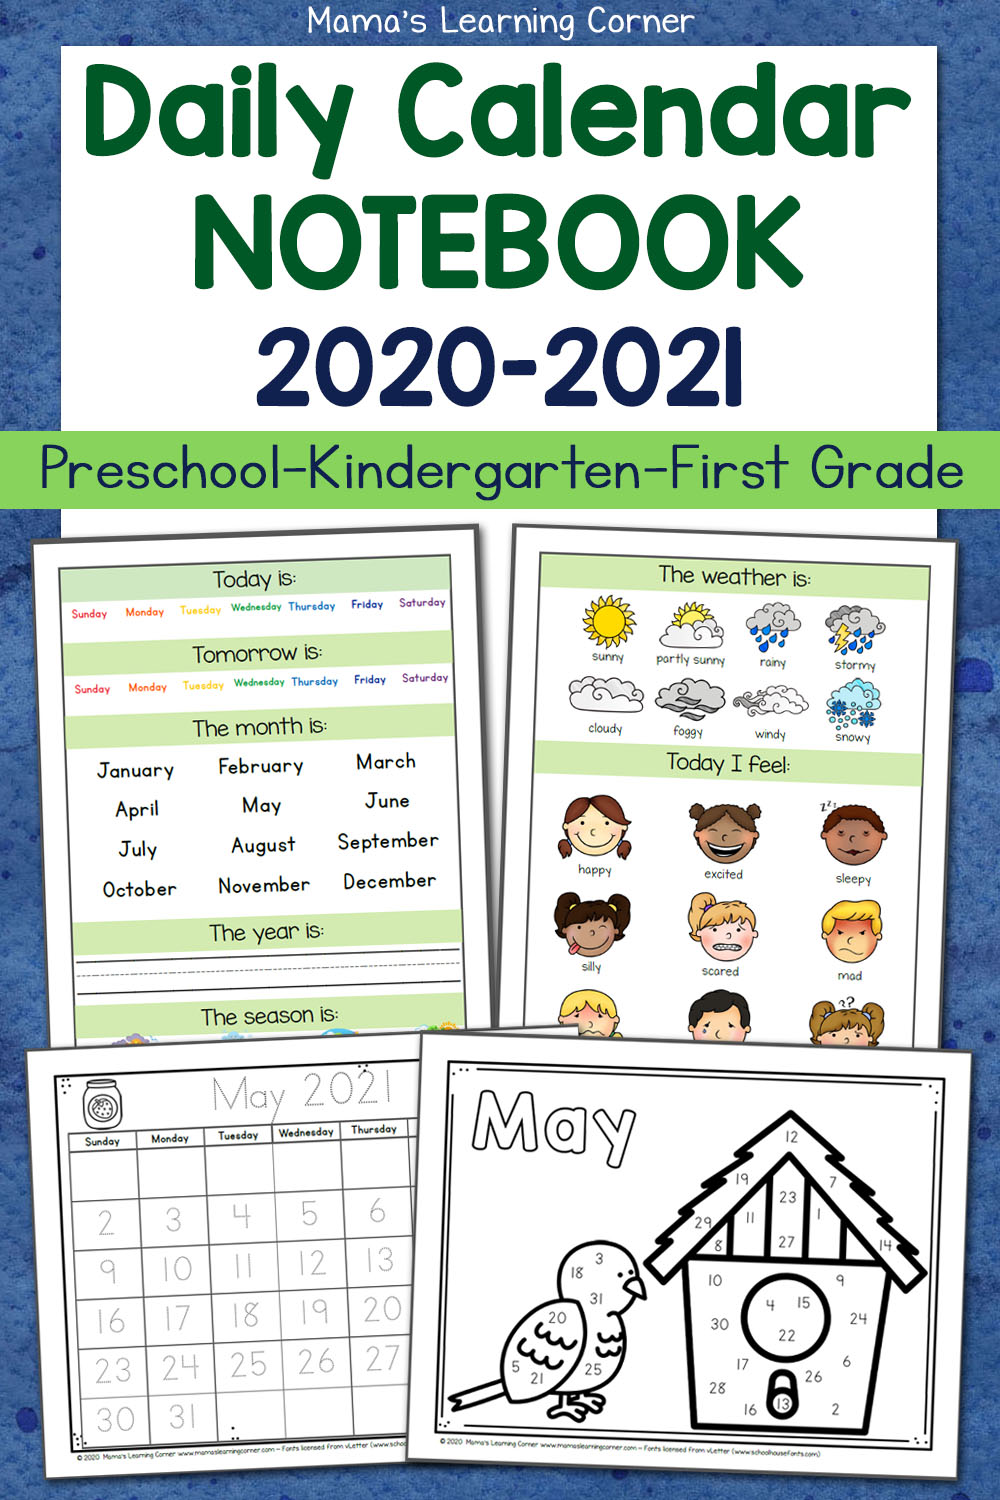 hight resolution of Daily Calendar Notebooks for 2020-2021 - Mamas Learning Corner